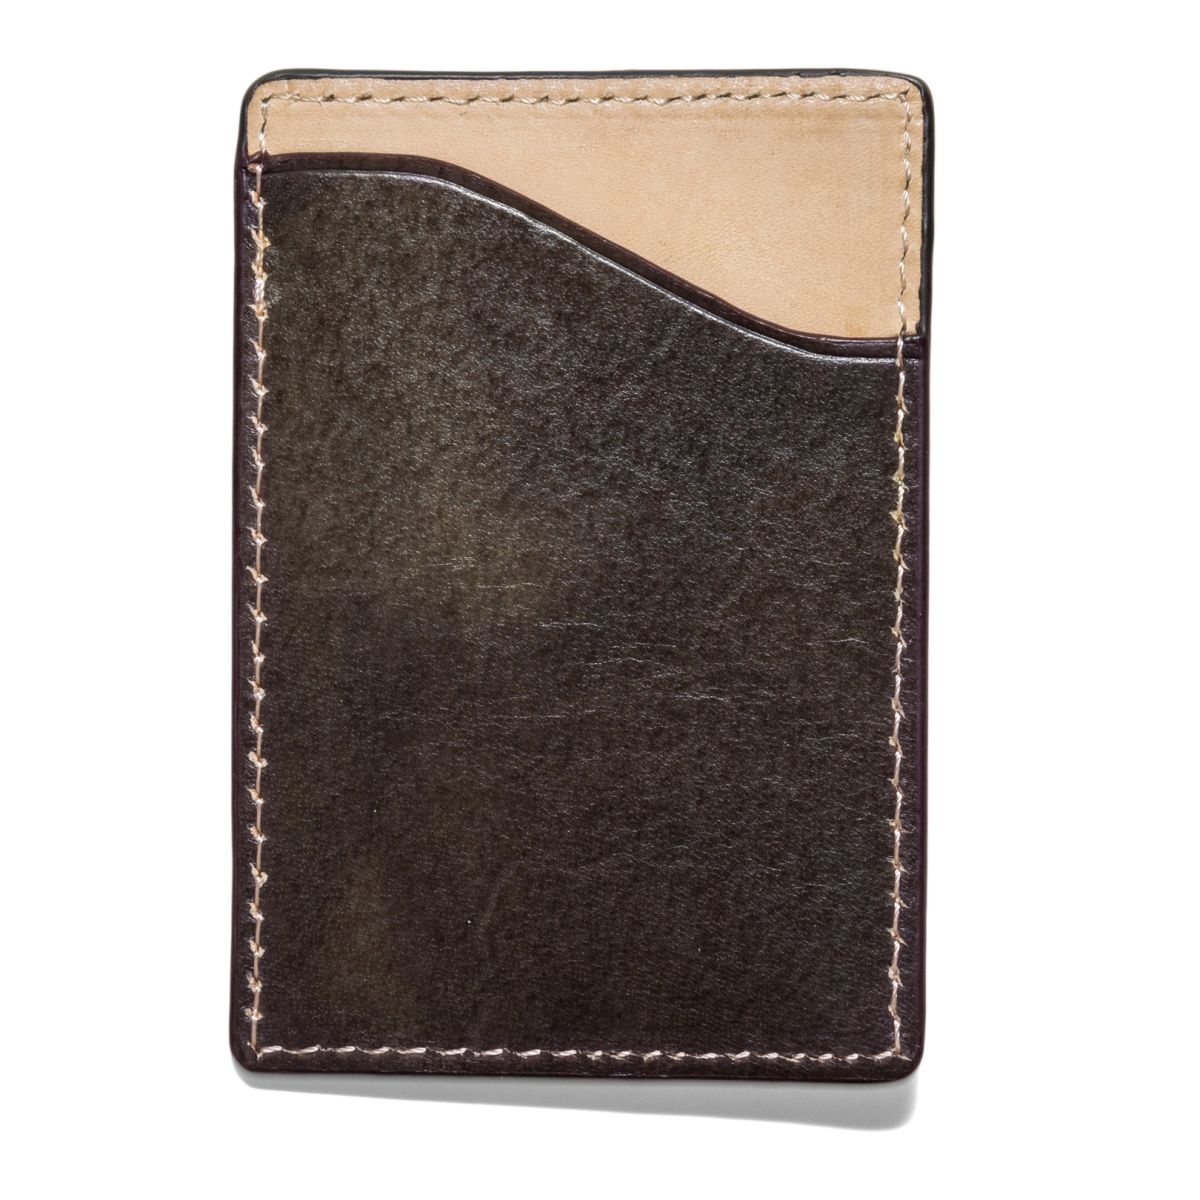 J.FOLD FLAT STASH Leather Wallet - Olive